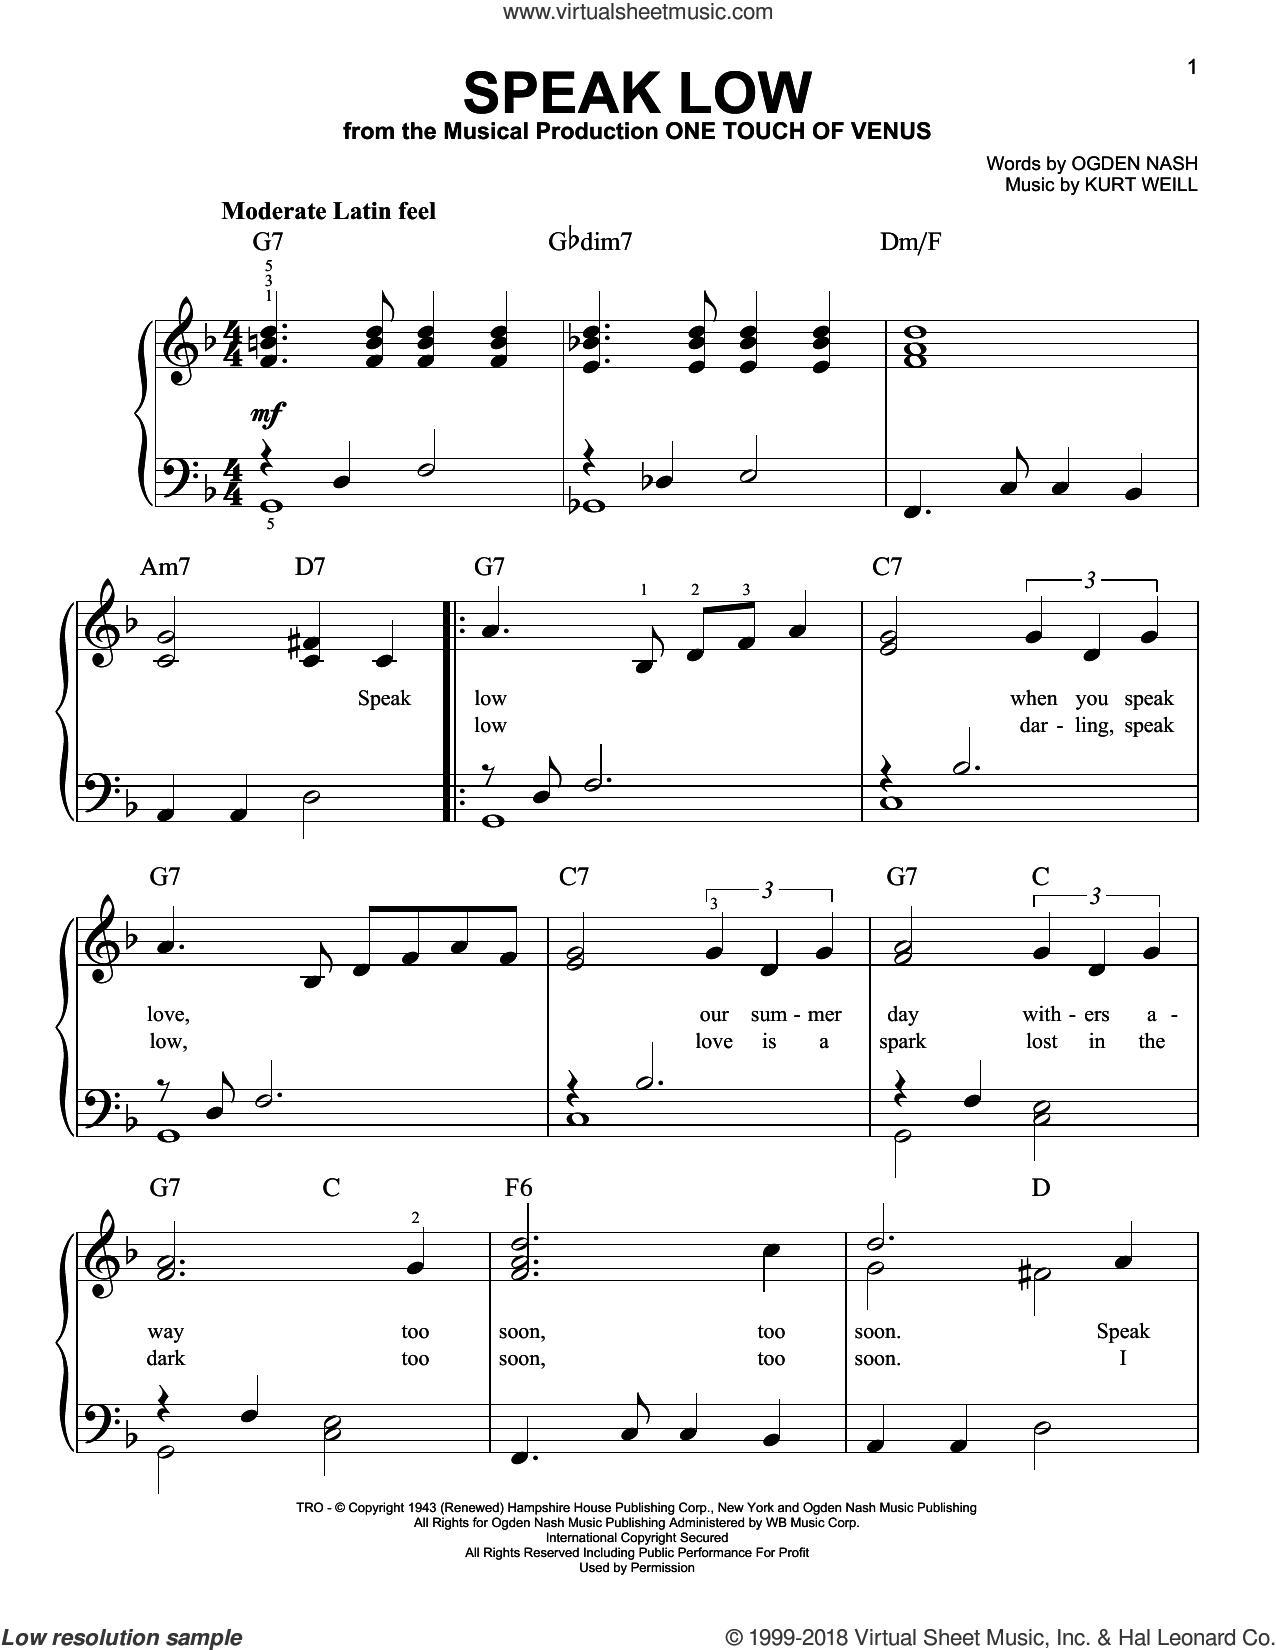 Speak Low sheet music for piano solo by Kurt Weill and Ogden Nash, beginner skill level